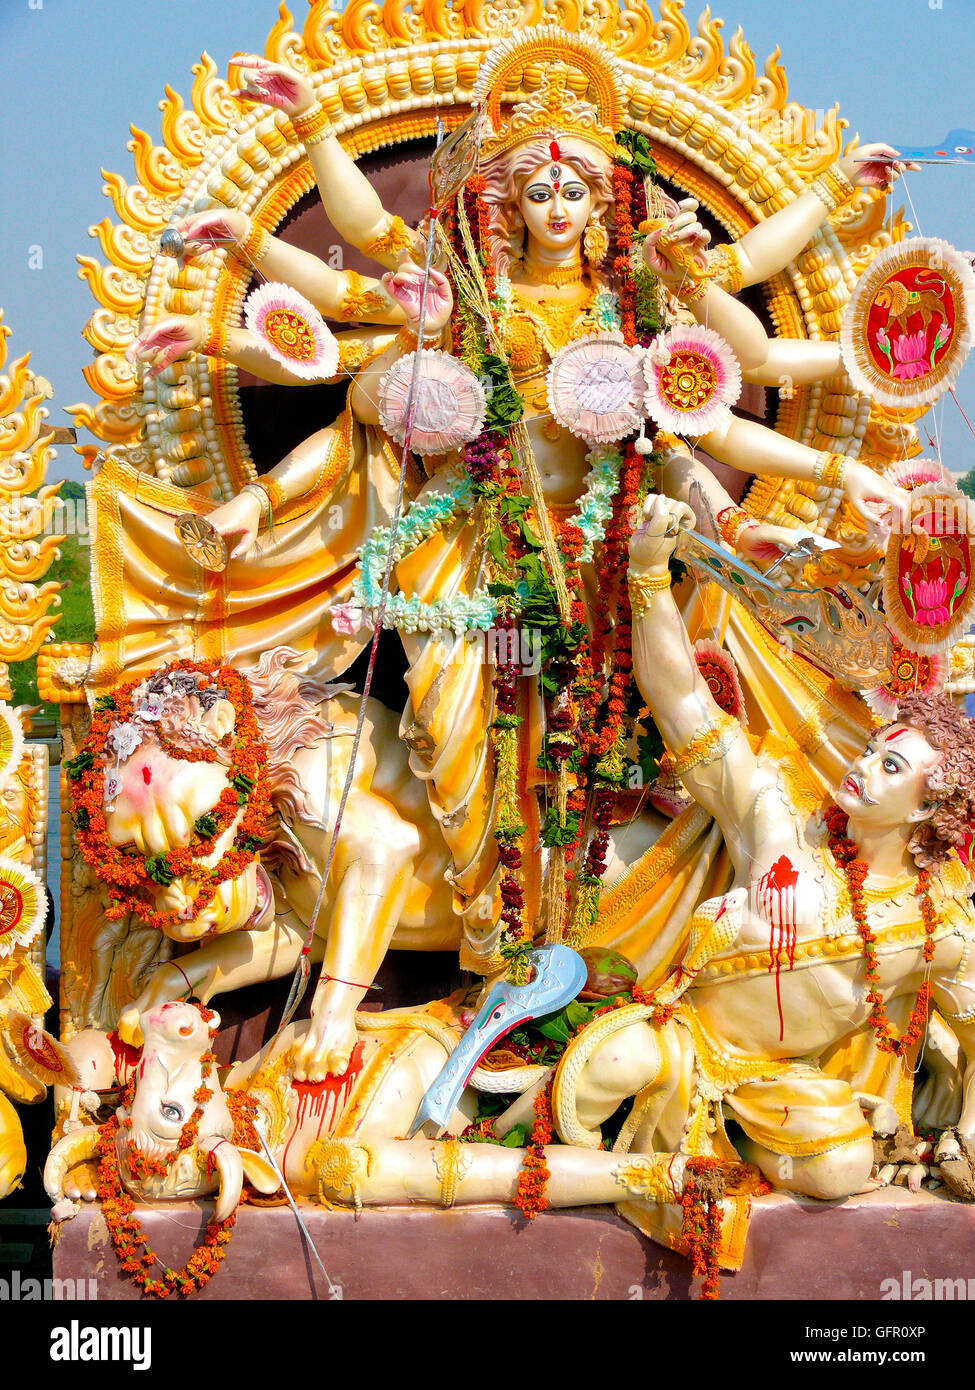 Traditionally sculpted deities from Indian mythology on the annual Dussera day. - Stock Image